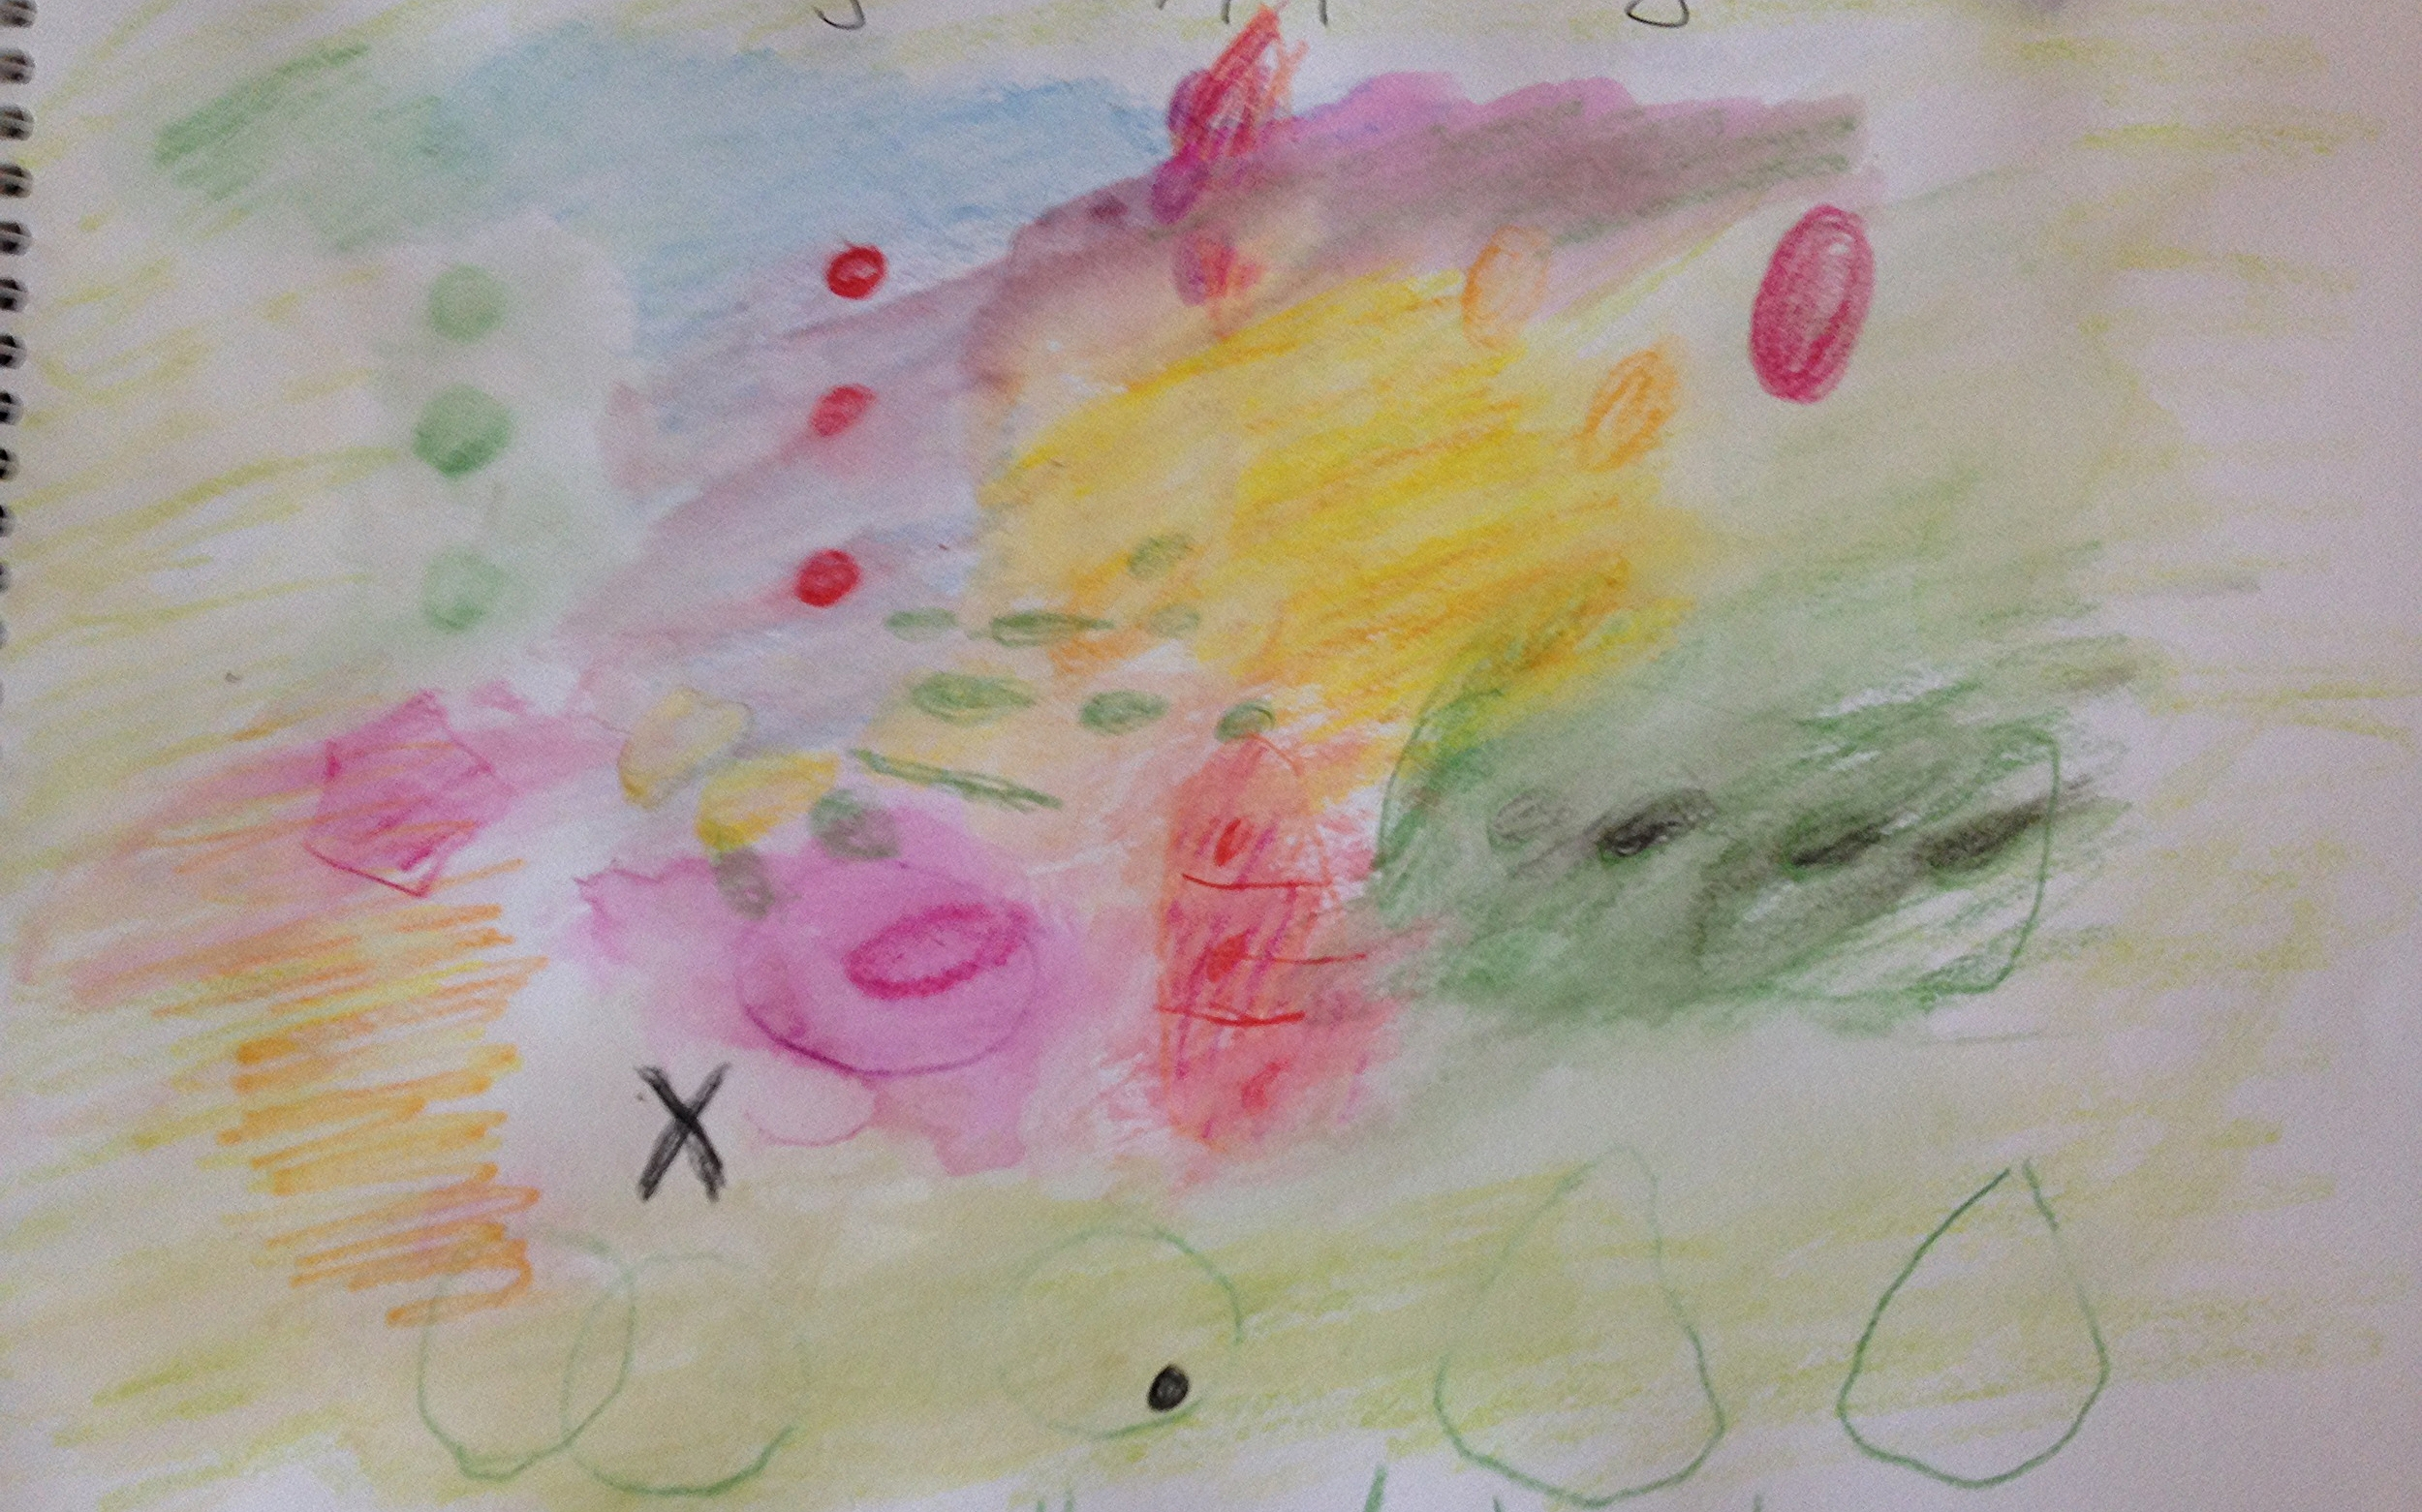 """Colour play by Katherine based on different elements from Koener's Green """"Cantatas for a divine garden"""". I did this drawing on the day of my Grandmothers funeral, so it was a somewhat cathartic exercise."""